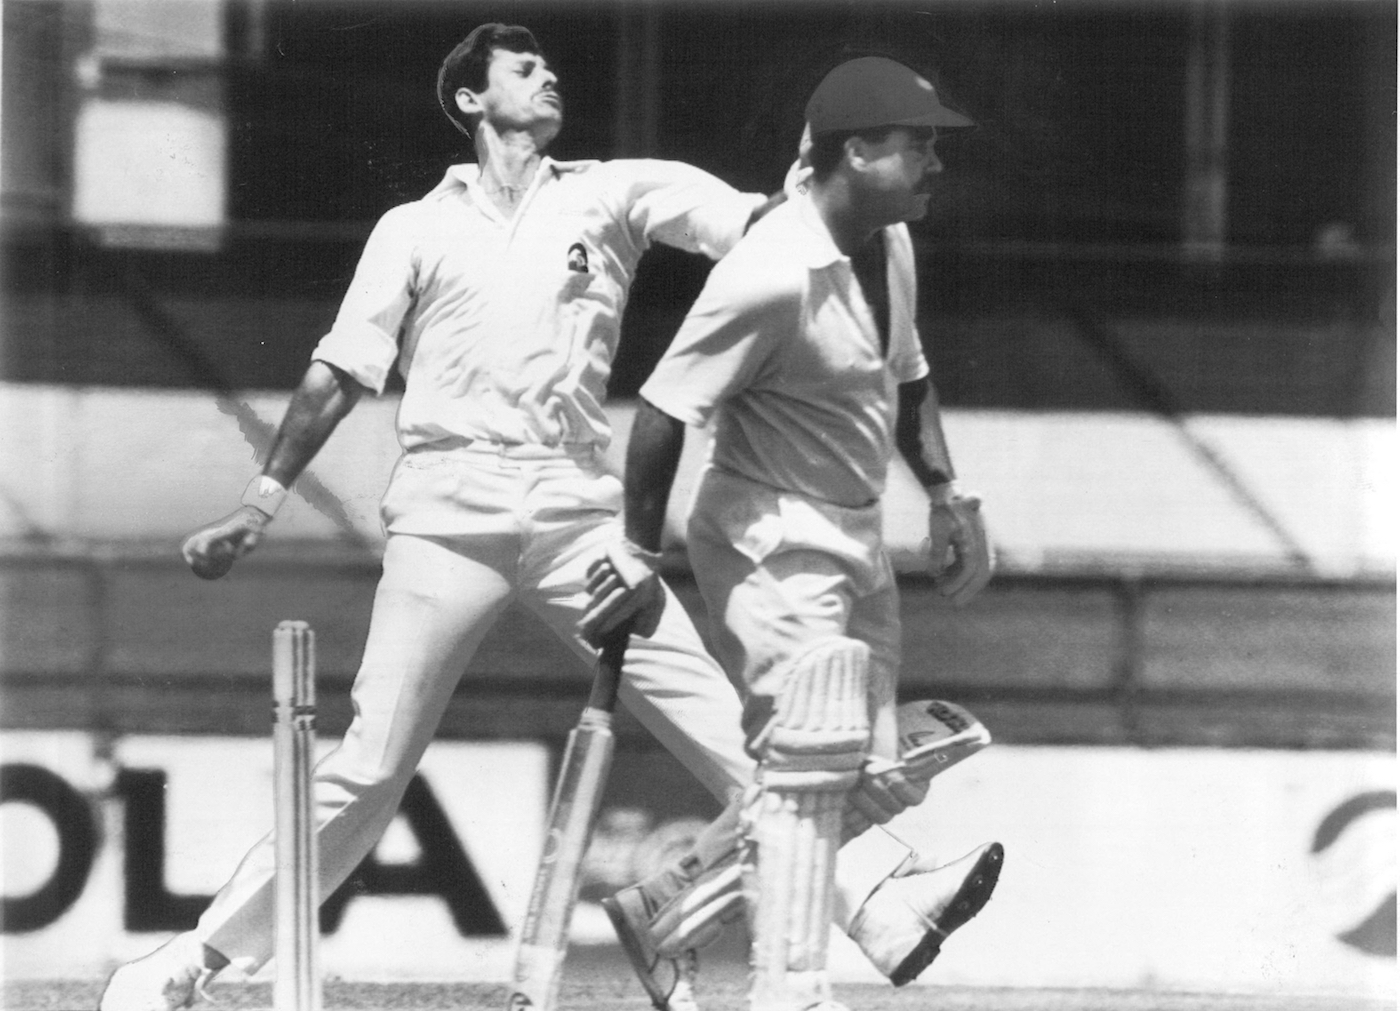 Hadlee took ten wickets in the Test but couldn't give New Zealand a series win